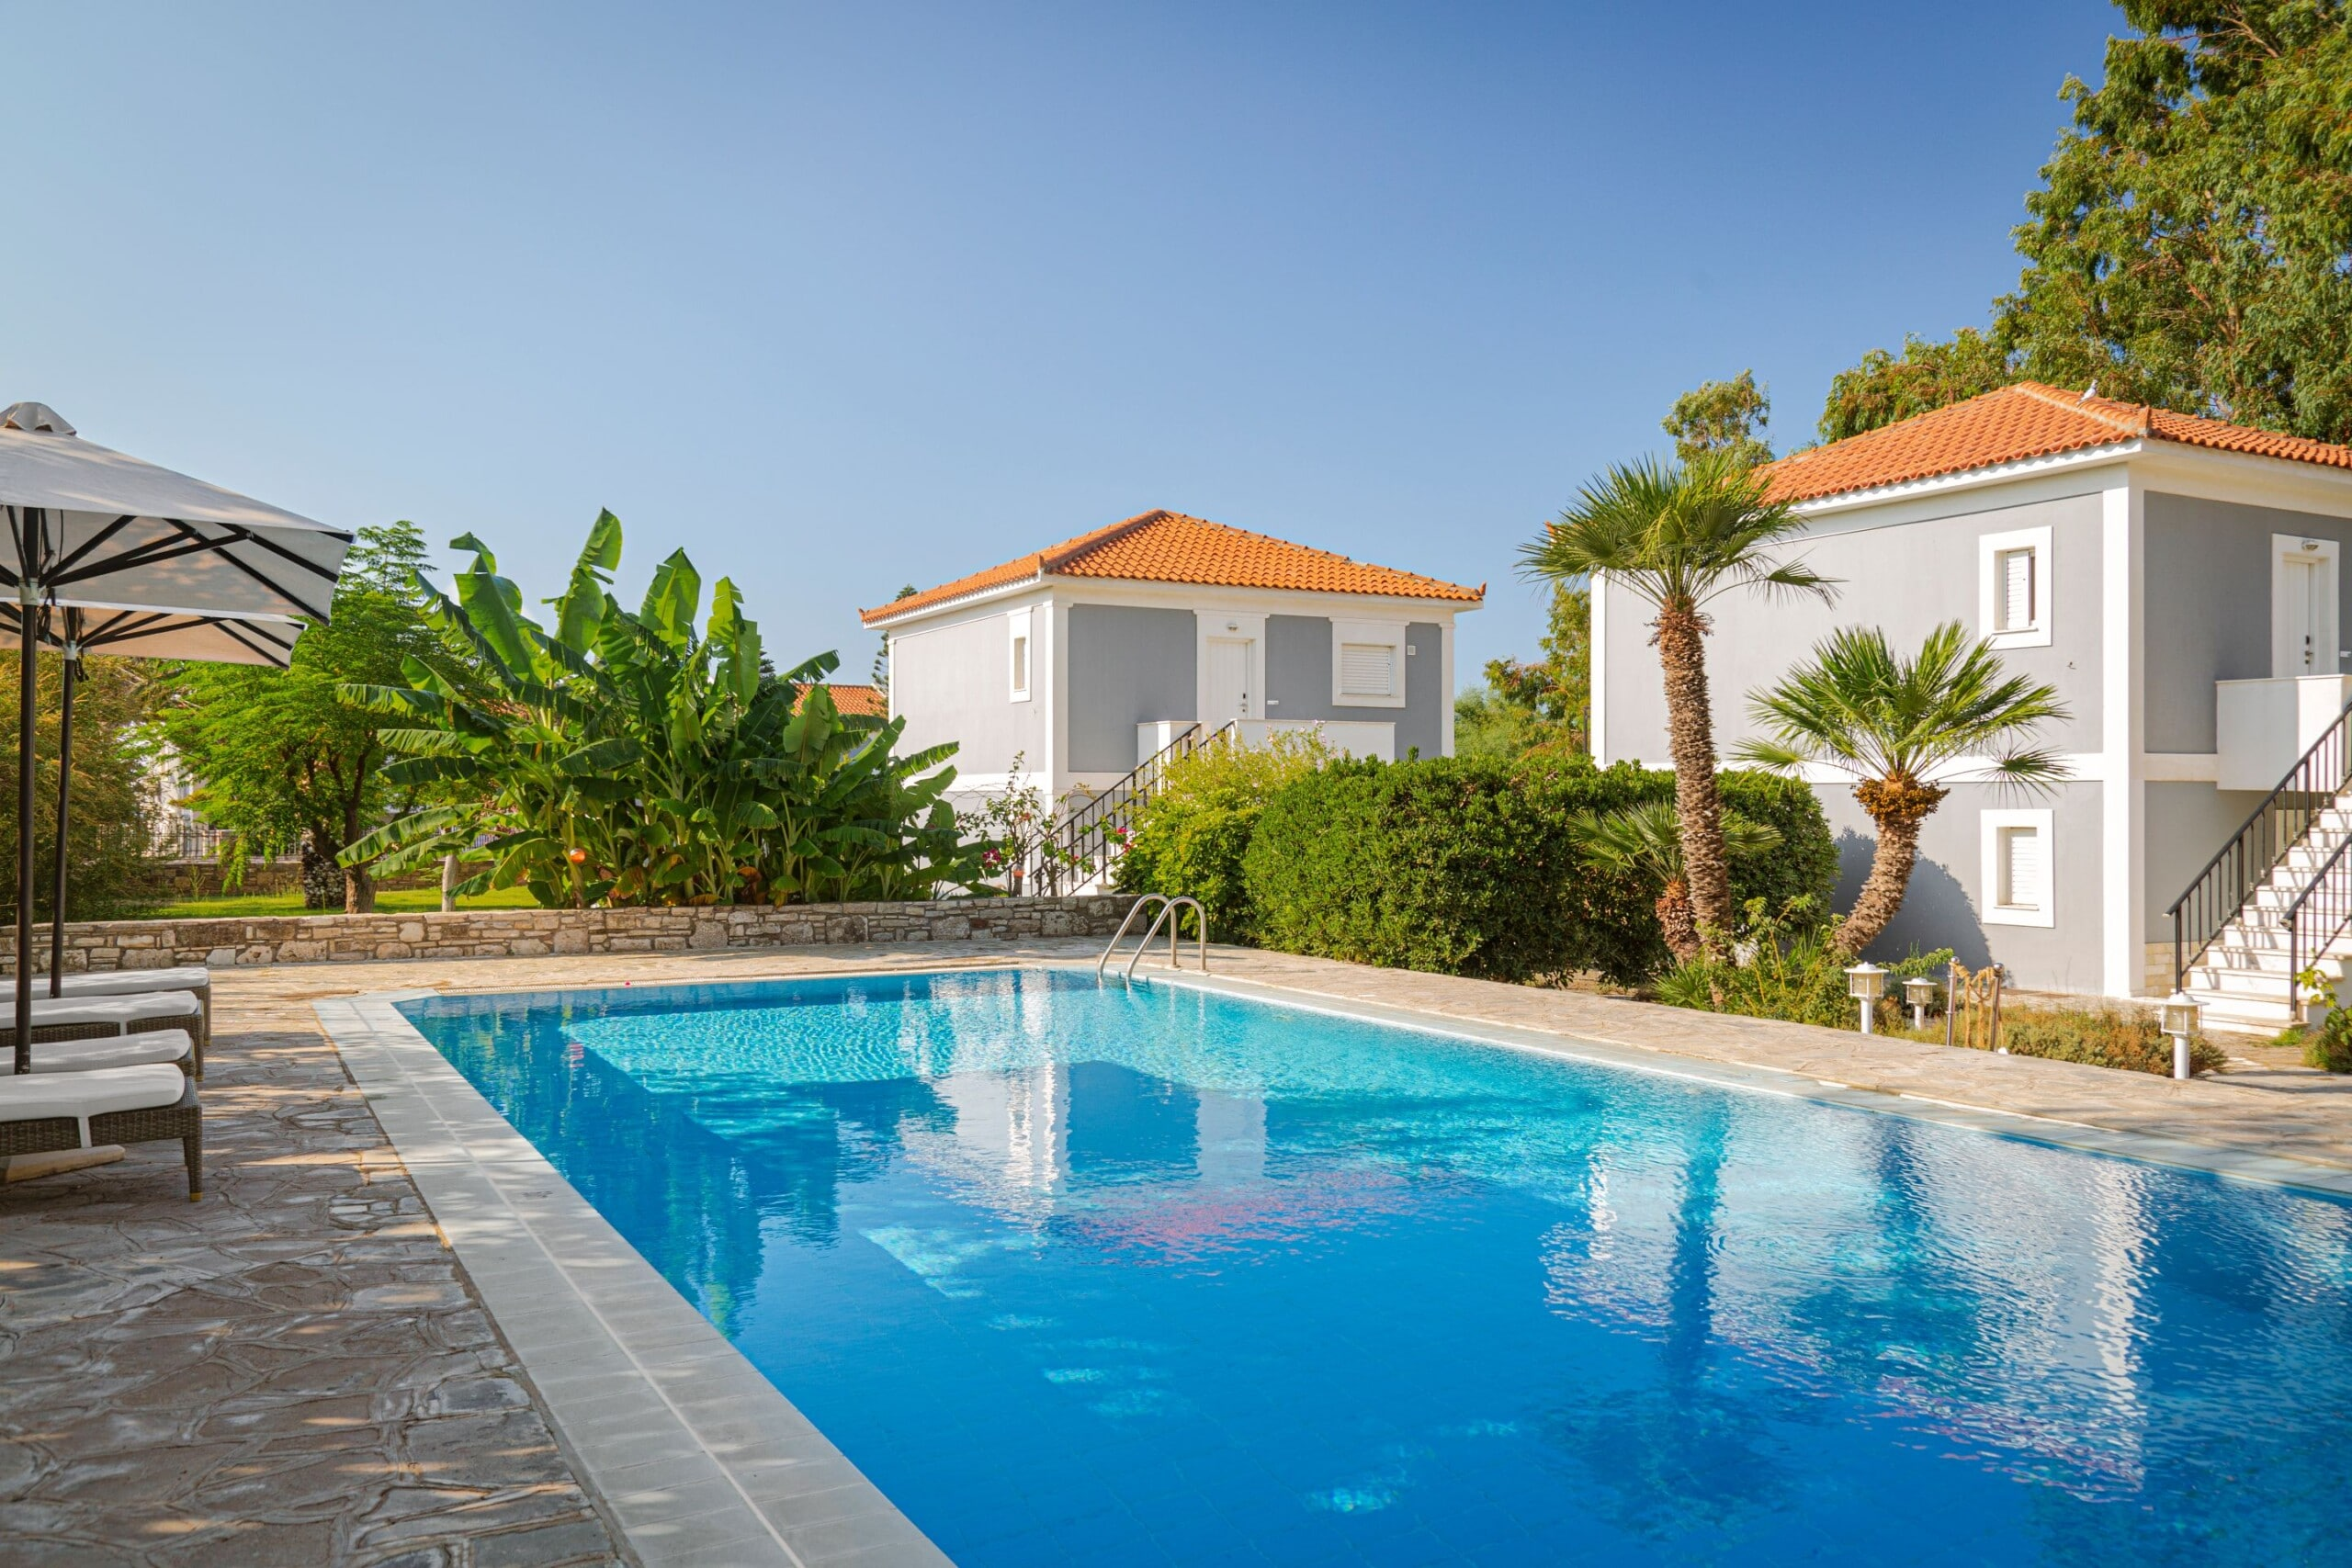 The main pool at Doryssa Coast seafront luxury apartments in Samos